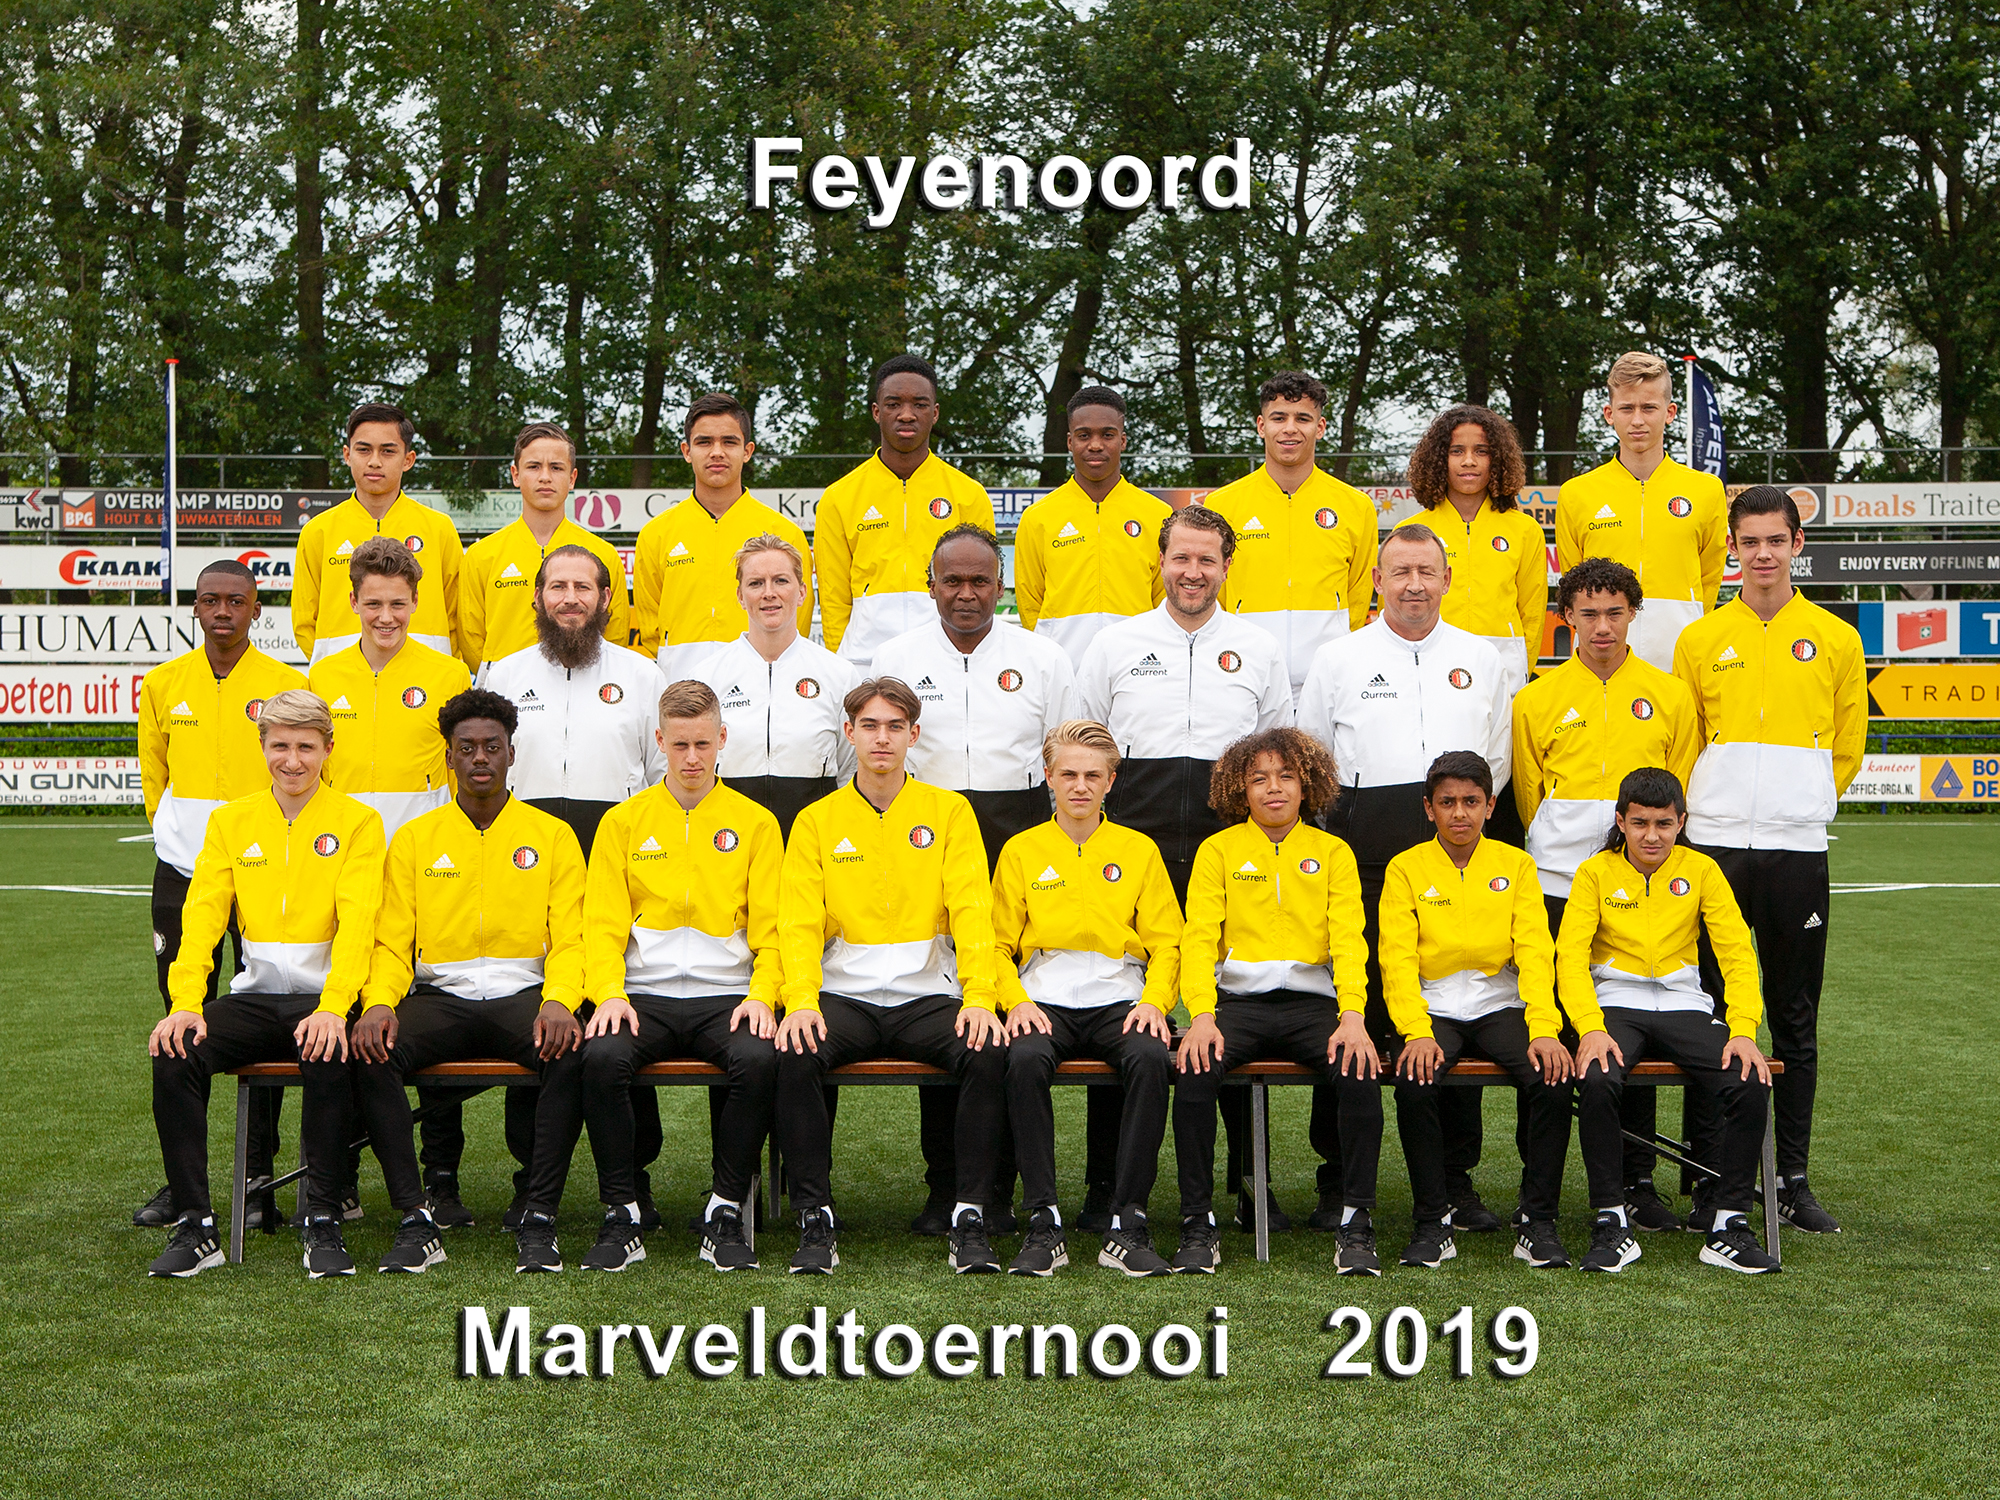 Marveld Tournament 2019 - Team Feyenoord